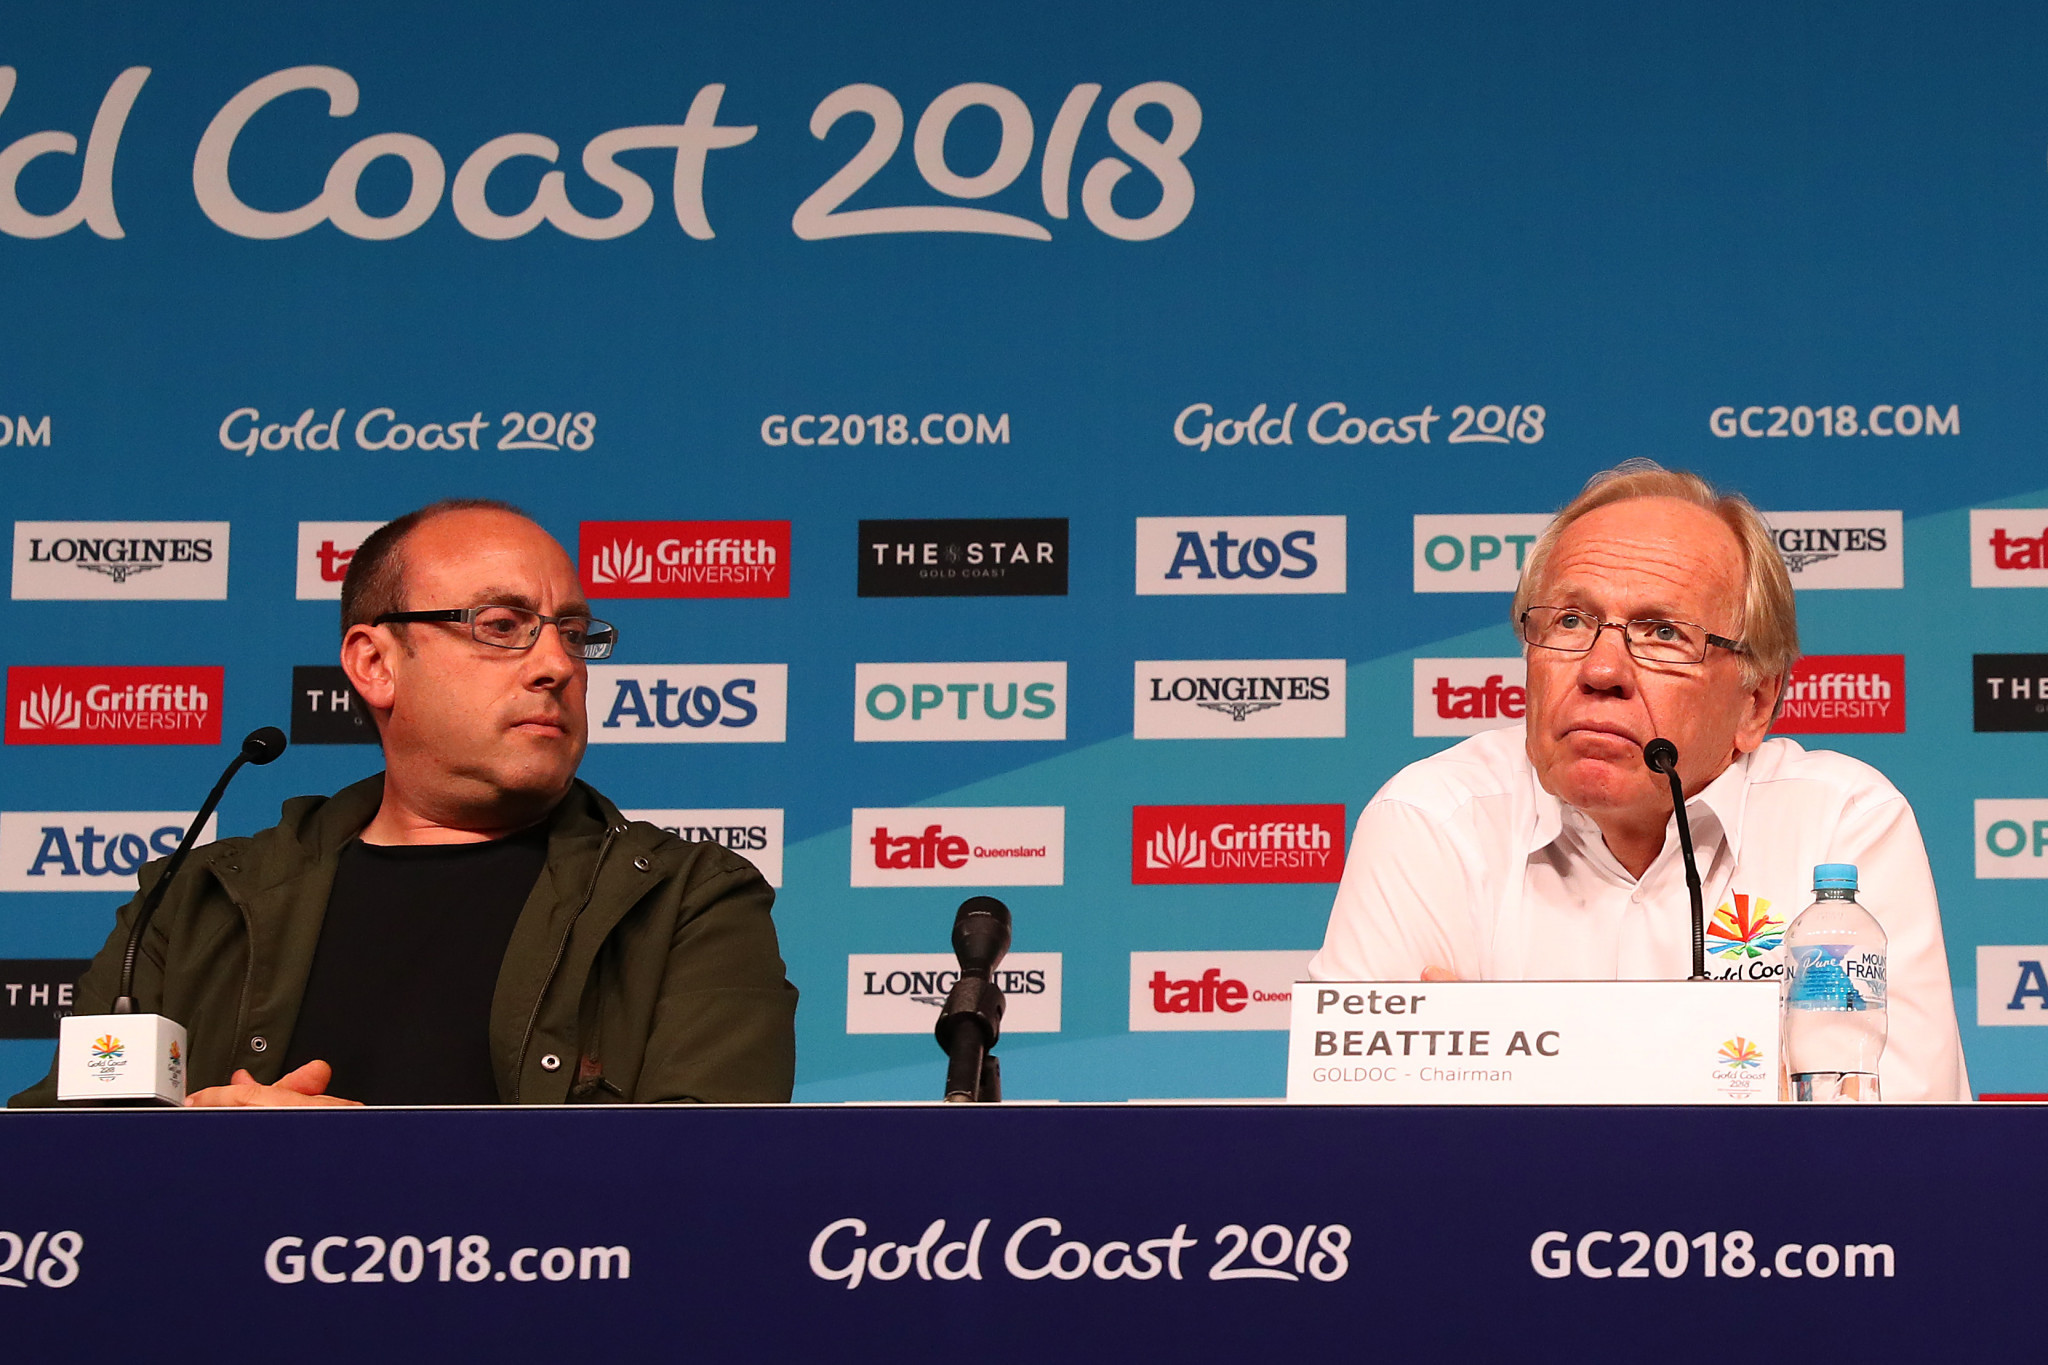 Peter Beattie believes his reputation will be forever damaged by the Gold Coast 2018 Closing Ceremony ©Getty Images